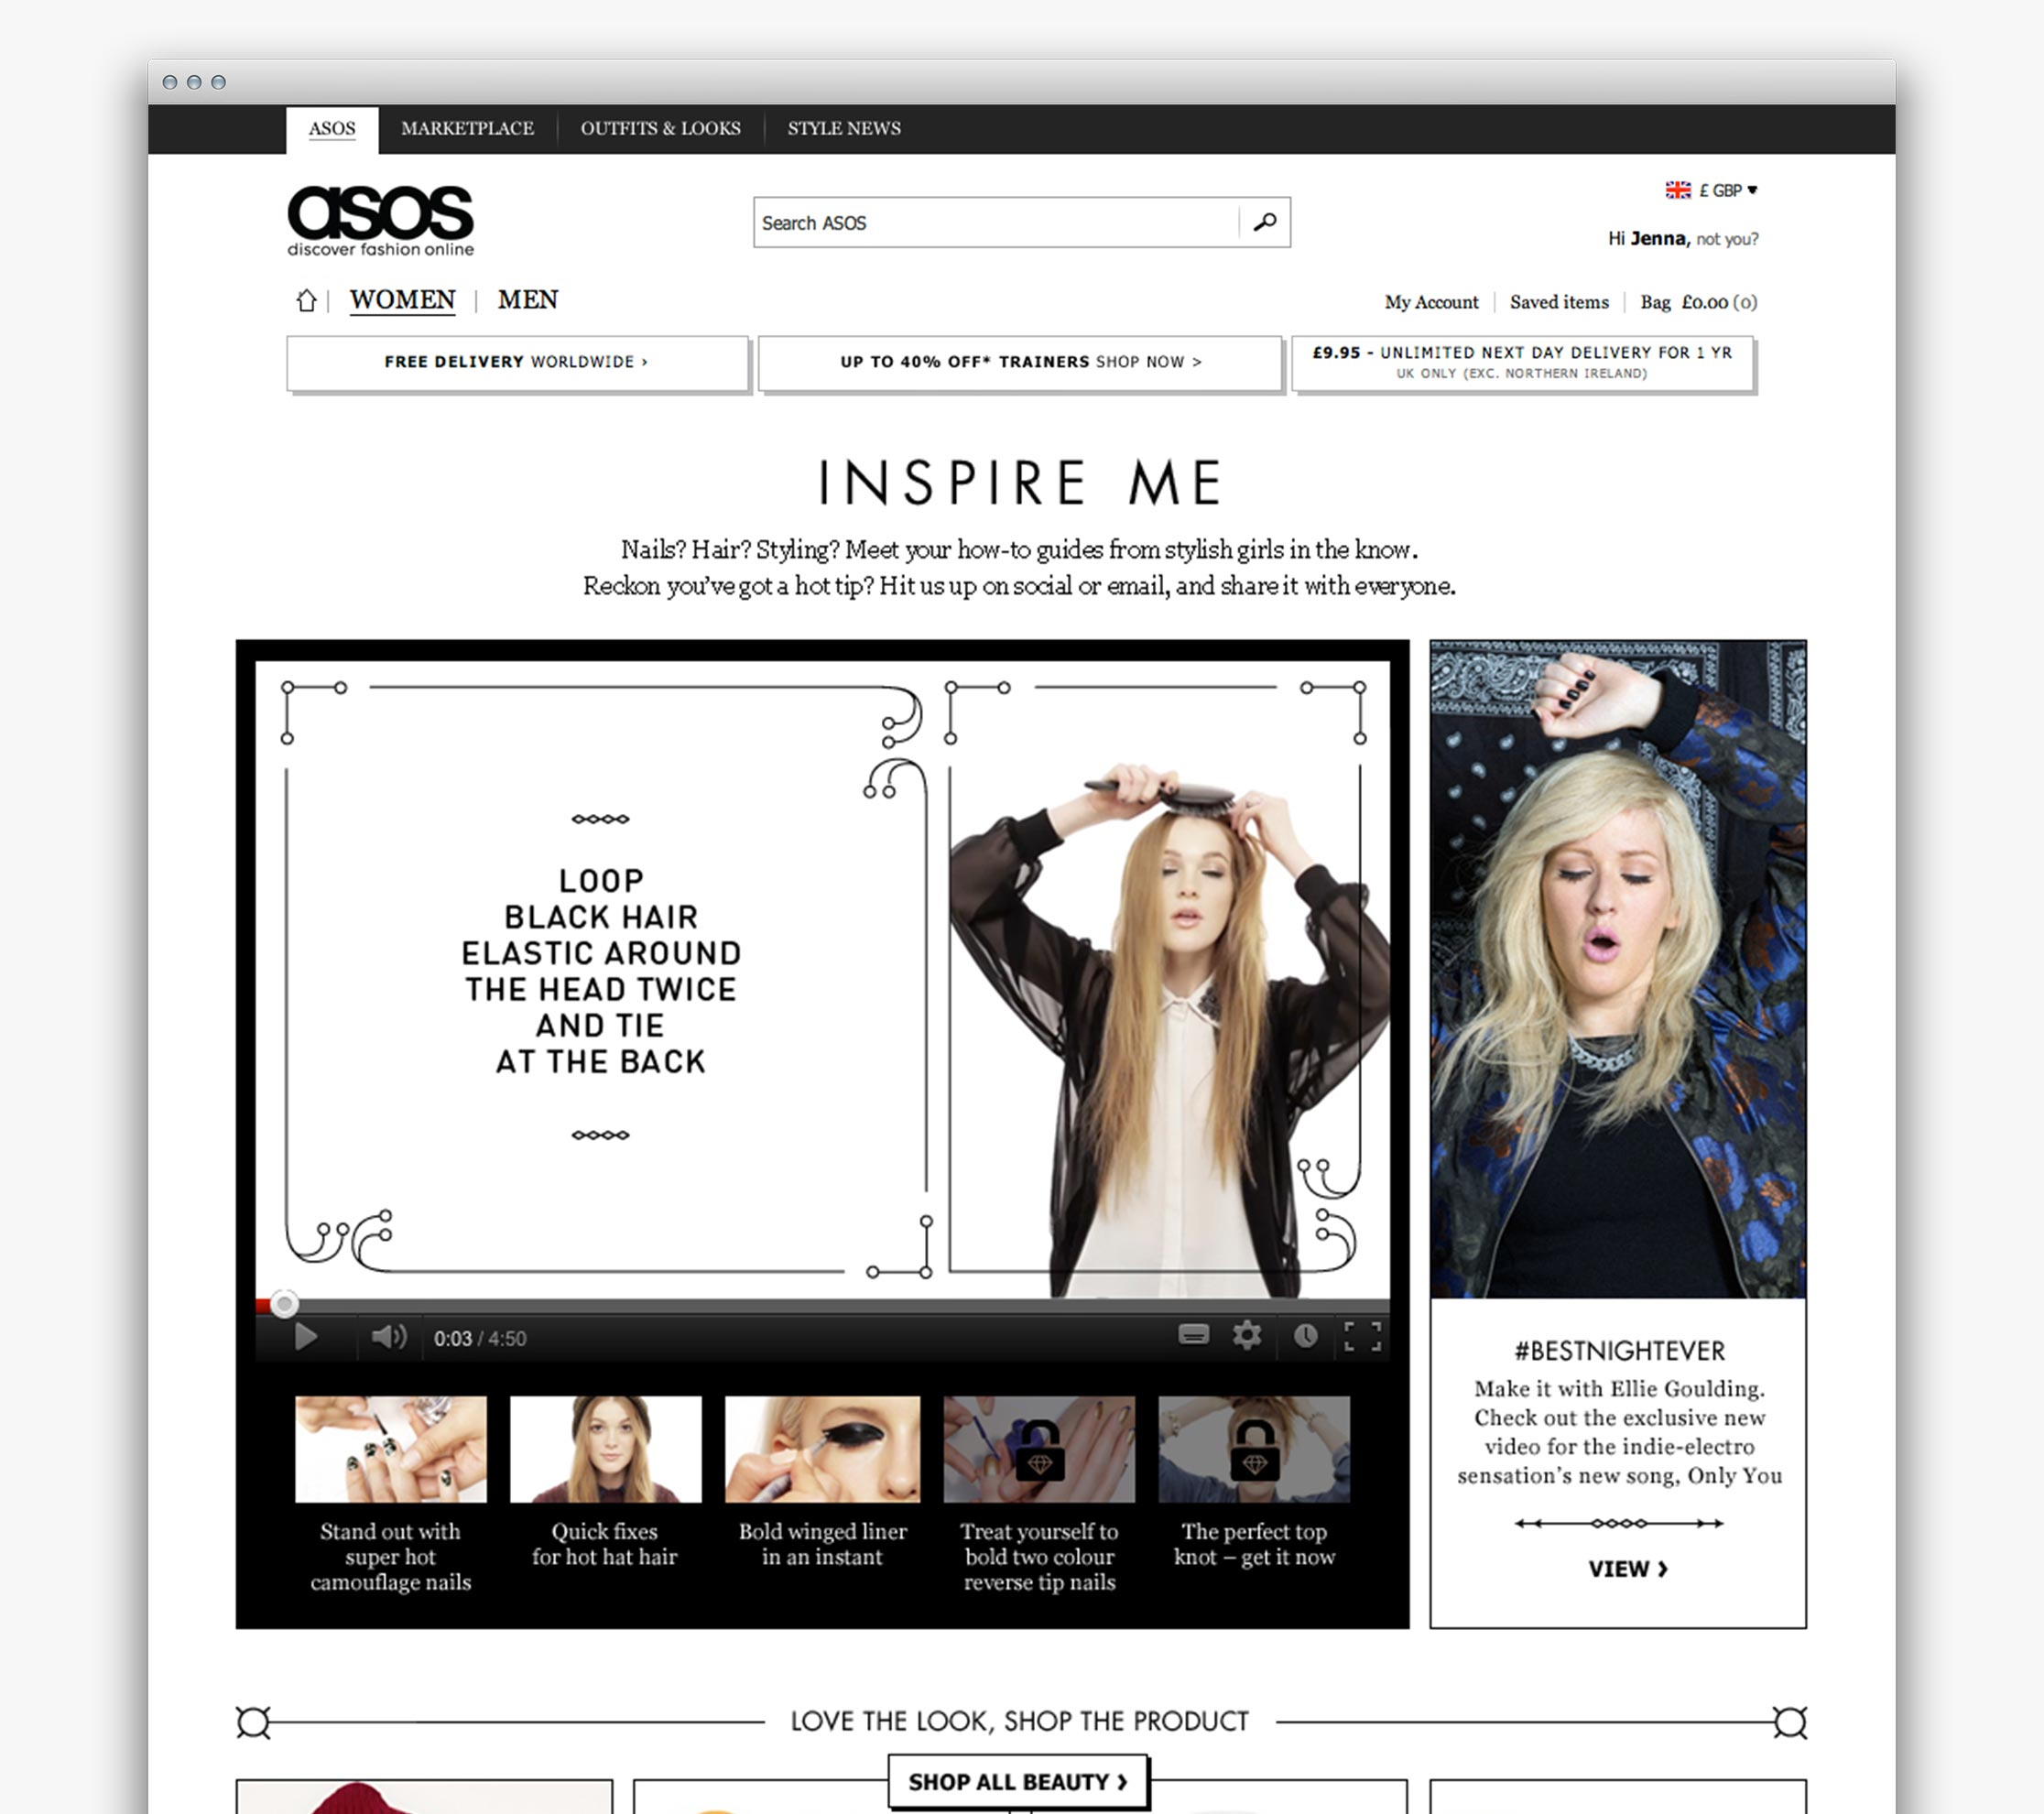 ASOS Womenswear #BestNightEver inspirational content hub